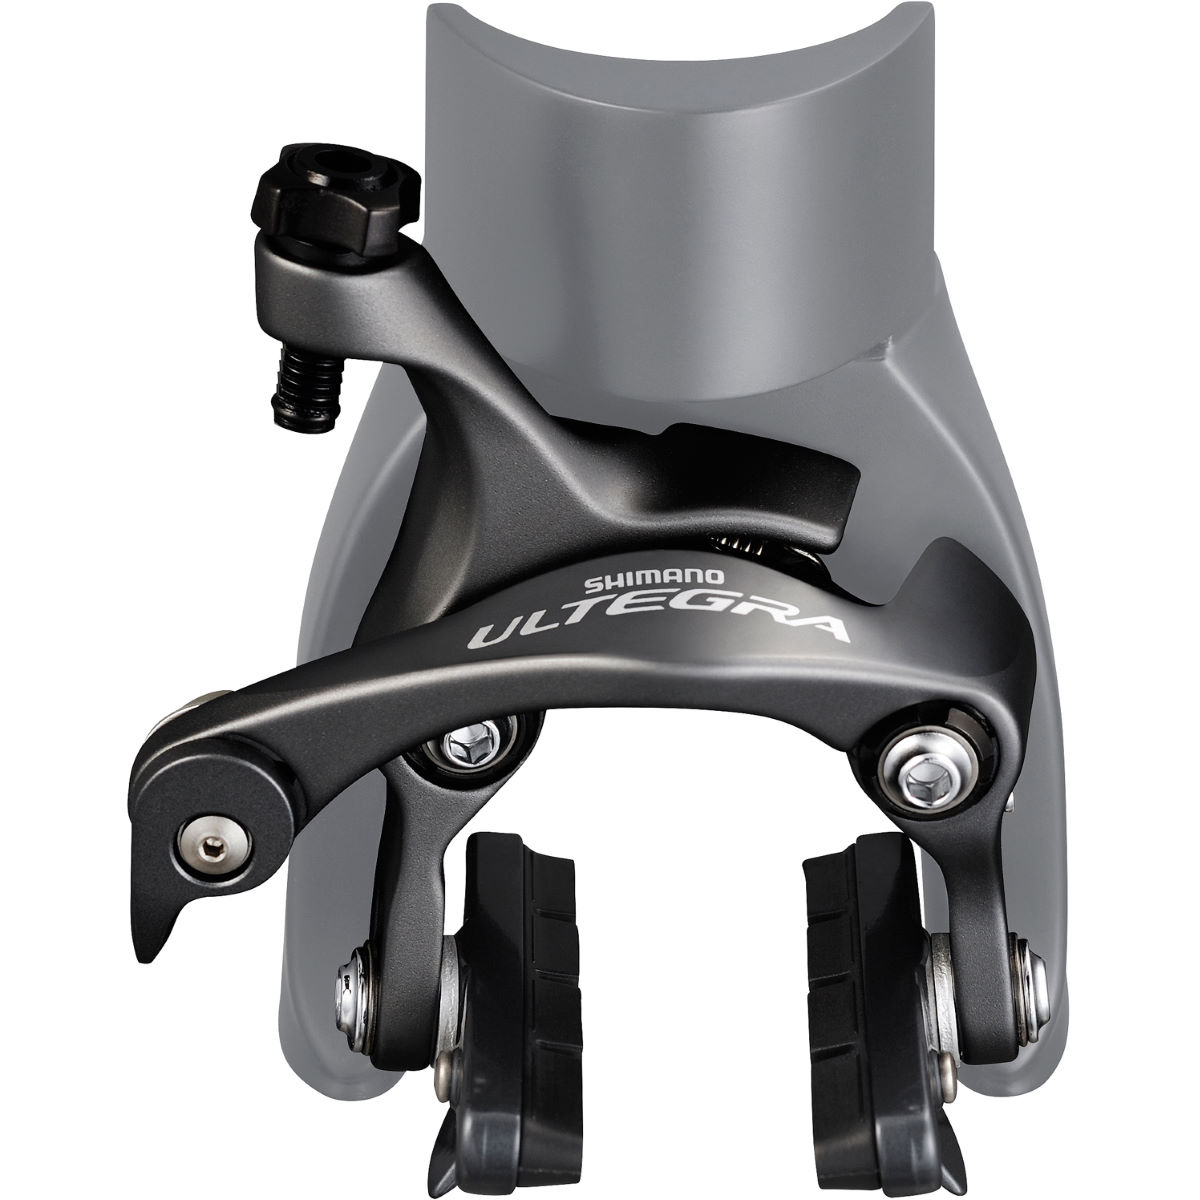 Shimano Ultegra 6810 Direct Mount Brake Caliper